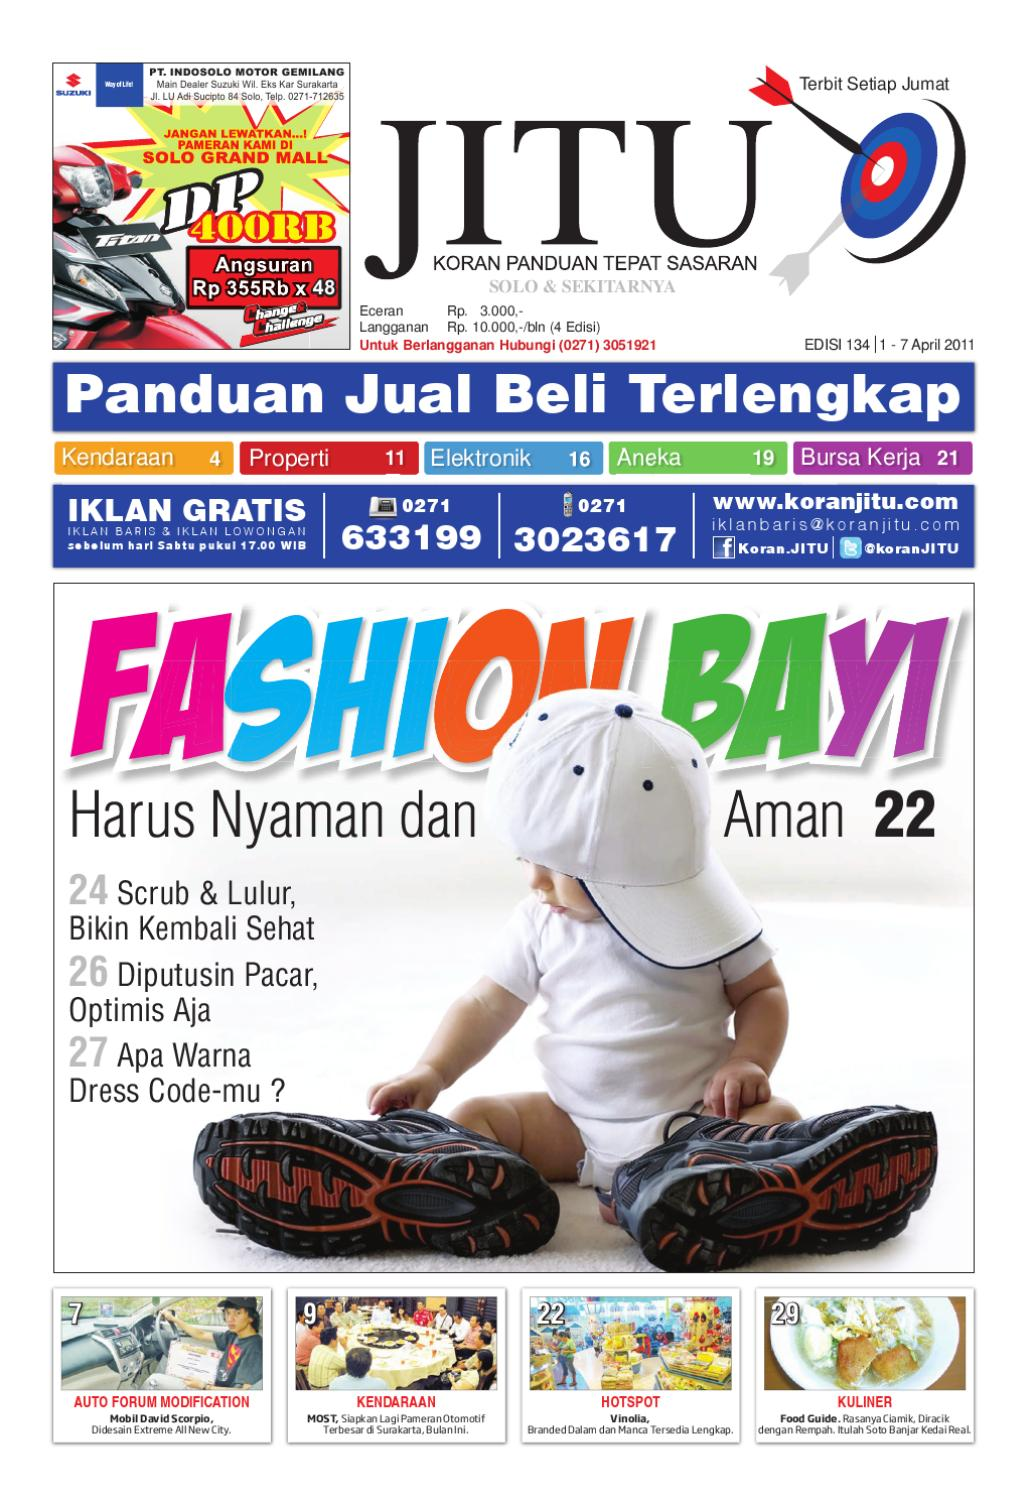 Epaper Edisi 134 By Cv Mitra Media Bangsa Issuu Tcash Vaganza 33 Cap Ibu Dan Anak Obat Batuk Herbal 150 Ml